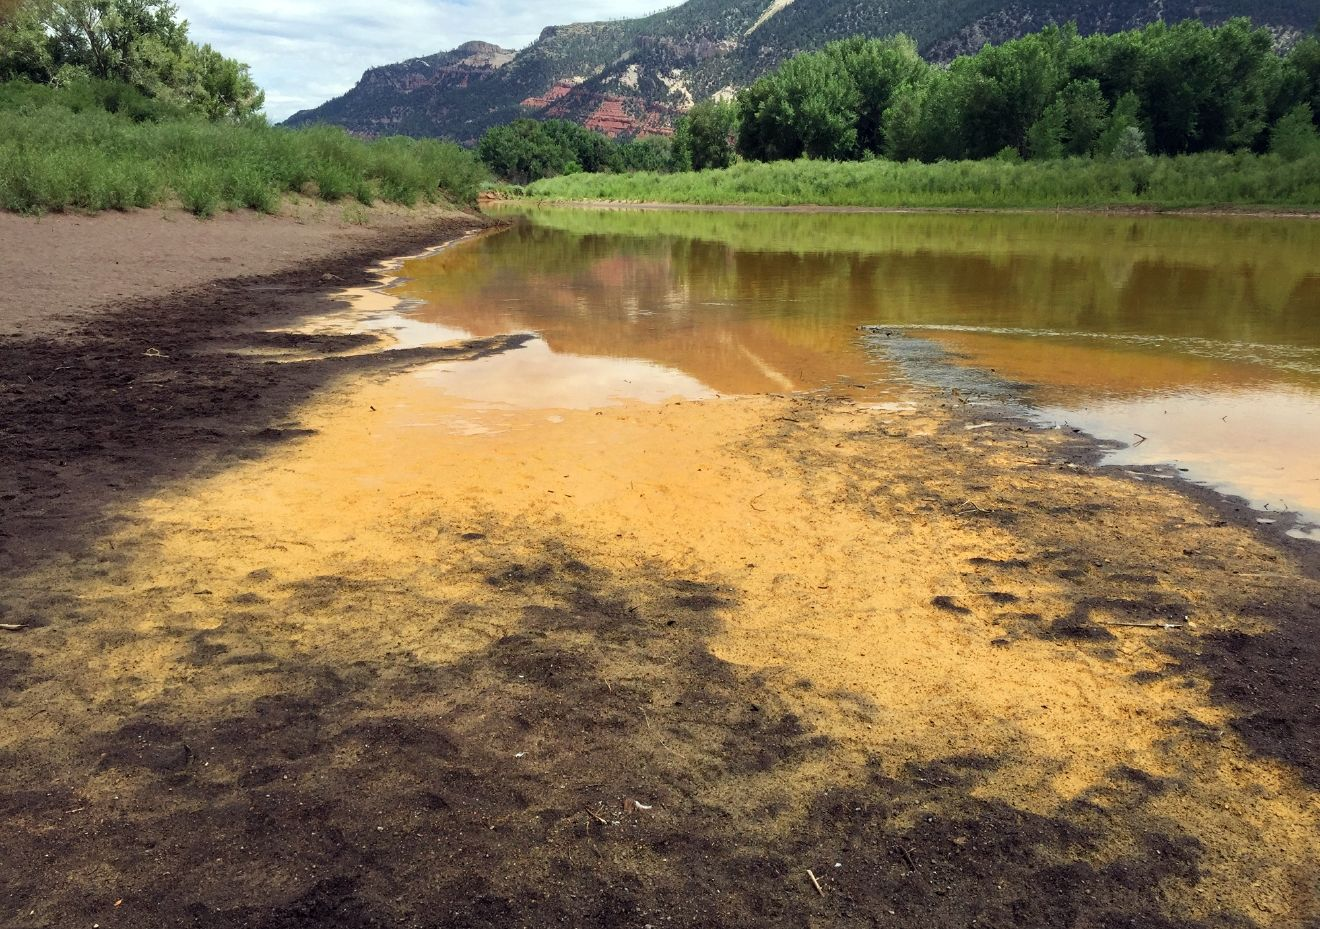 As the Animas River begins to recede it reveals a sludge left behind just north of Durango Colo., on Friday, Aug. 7, 2015, from the Gold King Mine spillage that happened on Wednesday north of Silverton Colo. Federal environmental officials say it's too early to know whether heavy metals that spilled into a river from a Colorado mine pose a health risk.  (Jerry McBride(/The Durango Herald via AP)